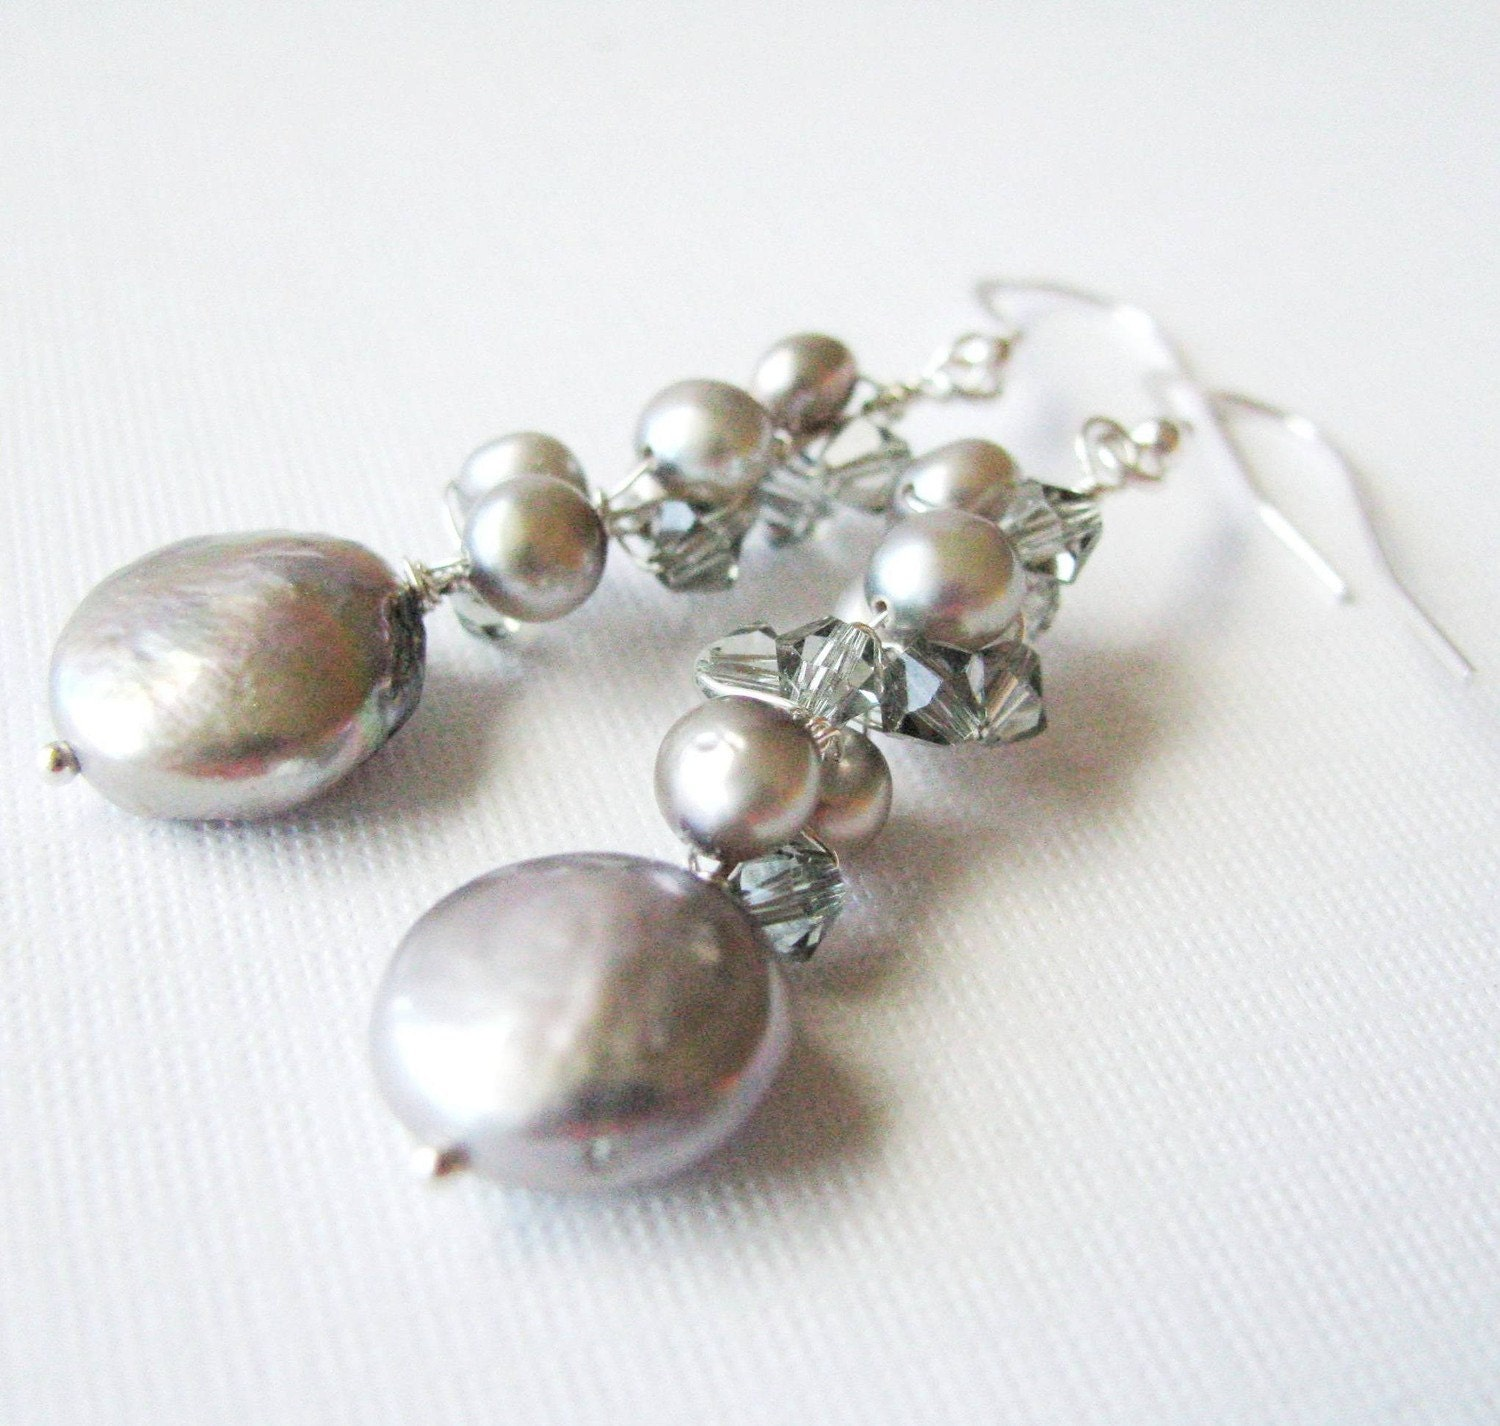 Silver Mist - Silver Freshwater Pearl and Swarovski Crystal Earrings in Sterling Silver - Bridal, Prom or Special Occasion